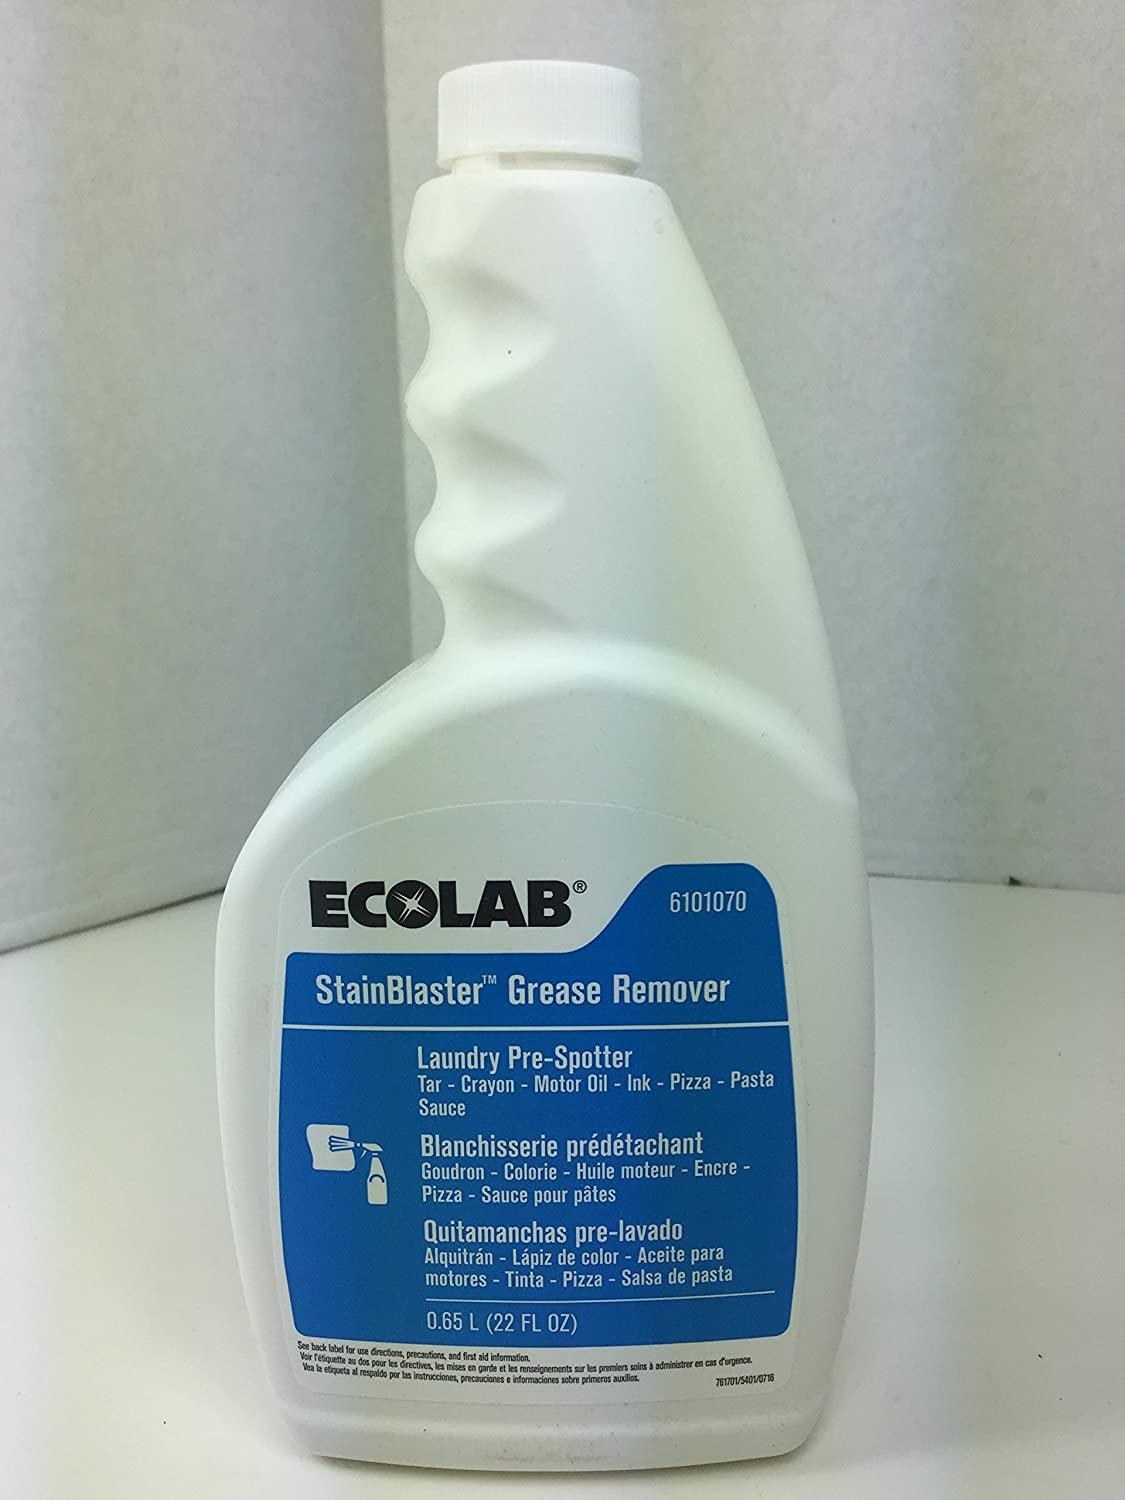 Amazon.com: Ecolab Stainblaster Grease Remover Laundry Pre-Spotter- 22 FL OZ: Industrial & Scientific